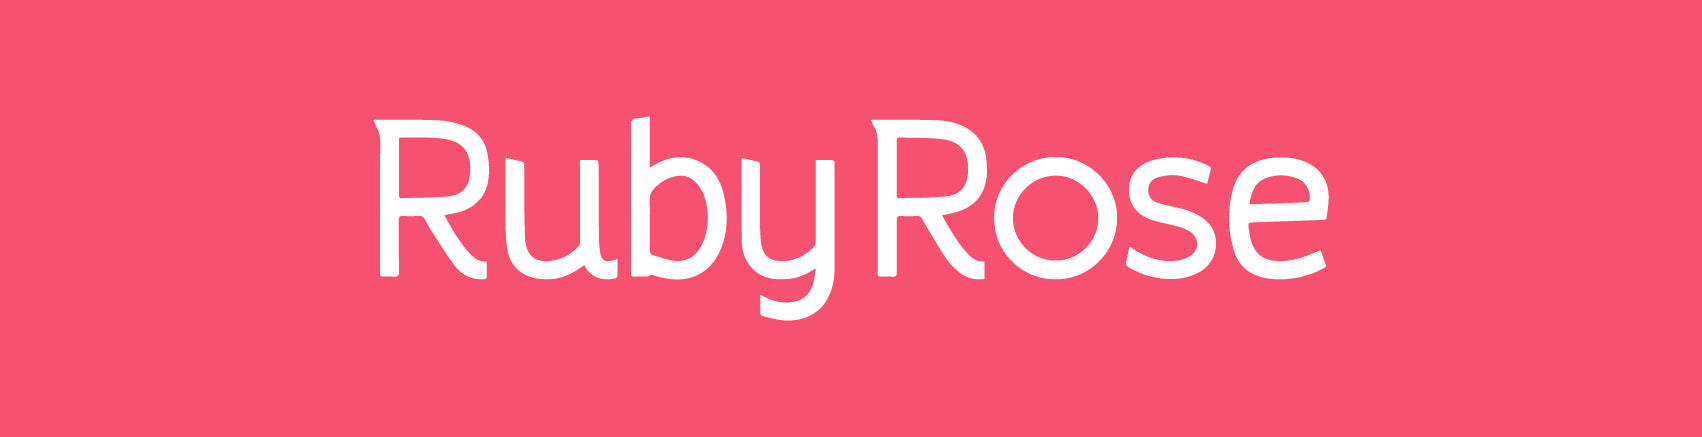 ruby rose makeup lebanon delivery online